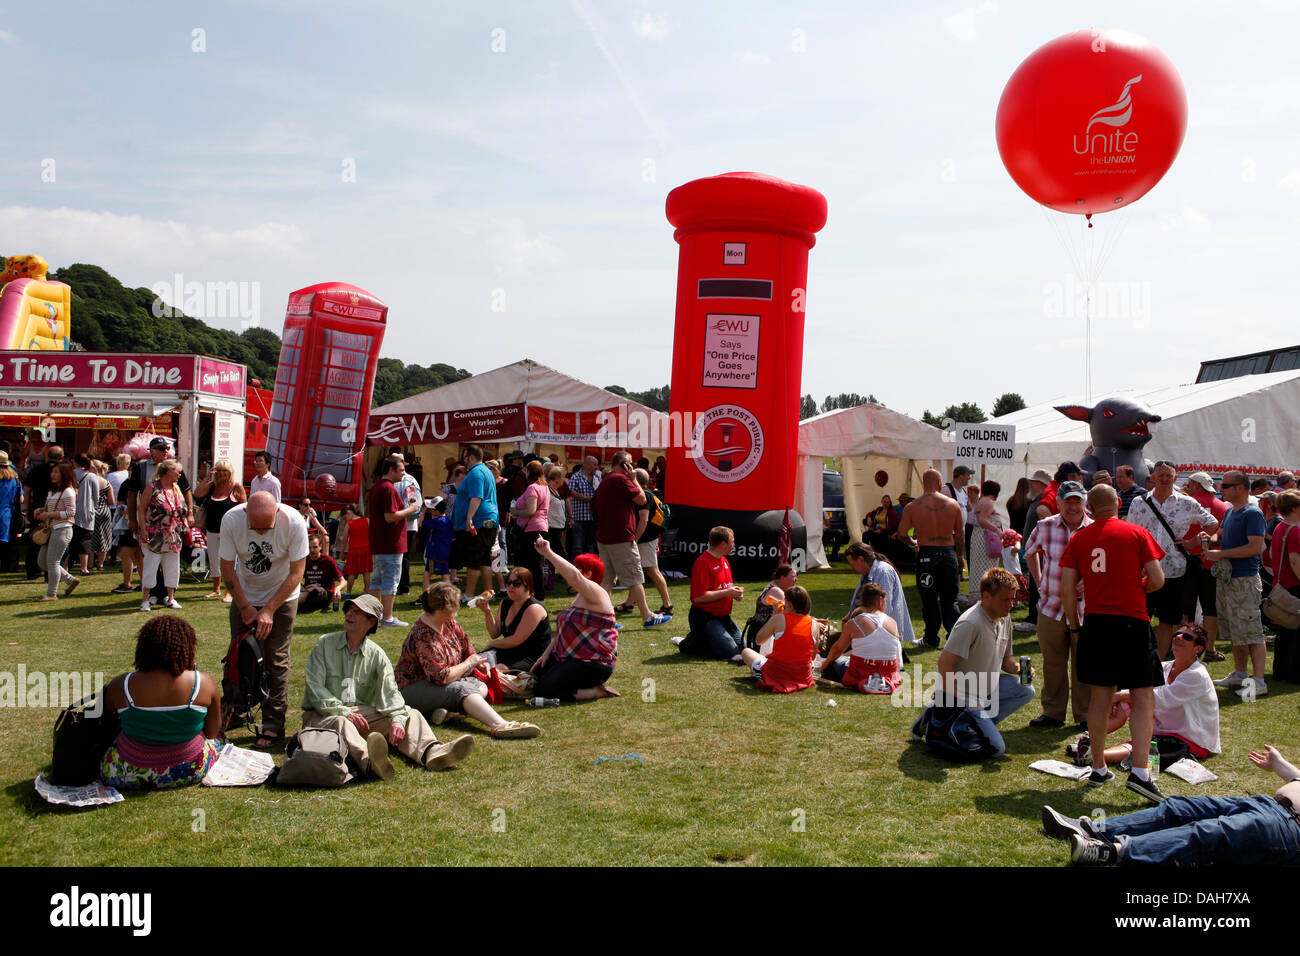 People enjoy sunshine at the 129th Durham Miners Gala at Durham, England. The CWU tent is seen in the background. - Stock Image